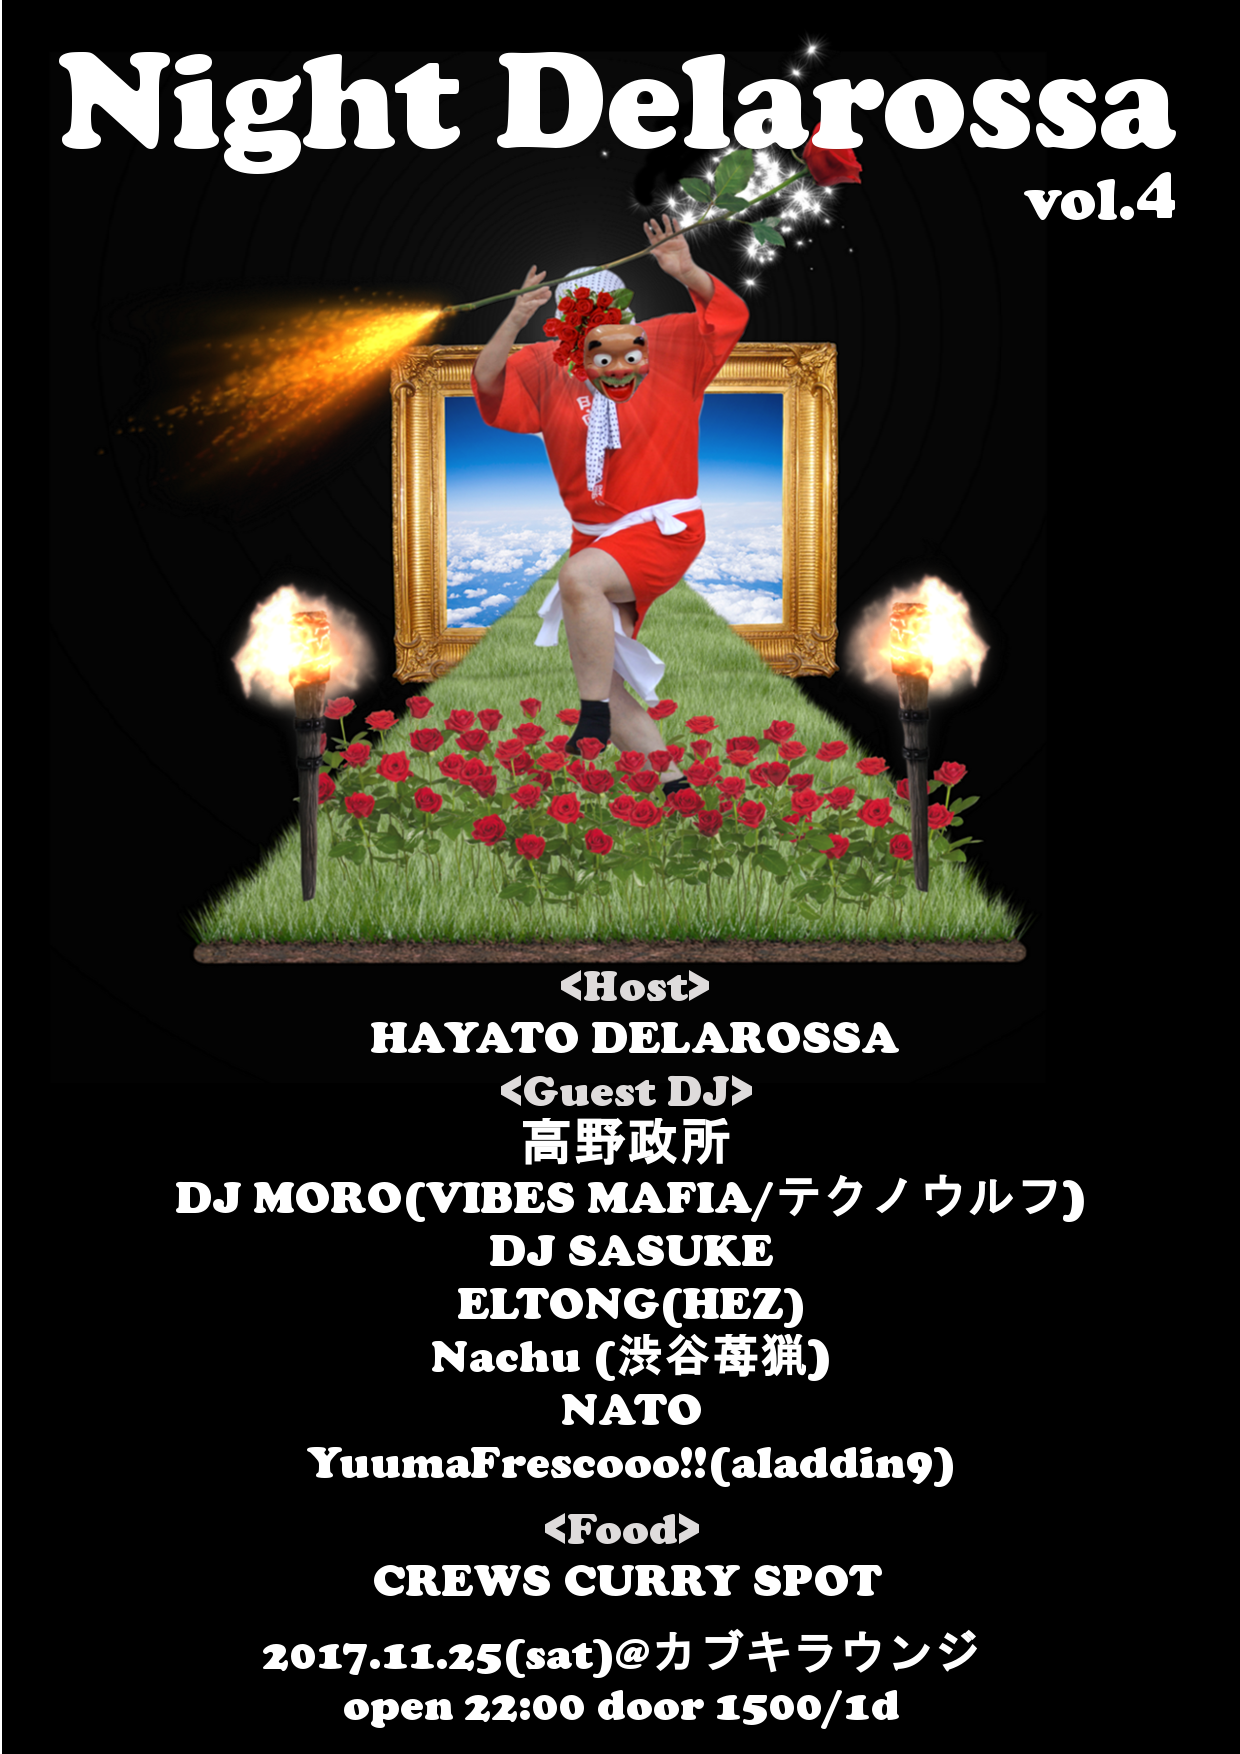 "2017.11.25(sat)@カブキラウンジ ""Night Delarossa vol.4"""